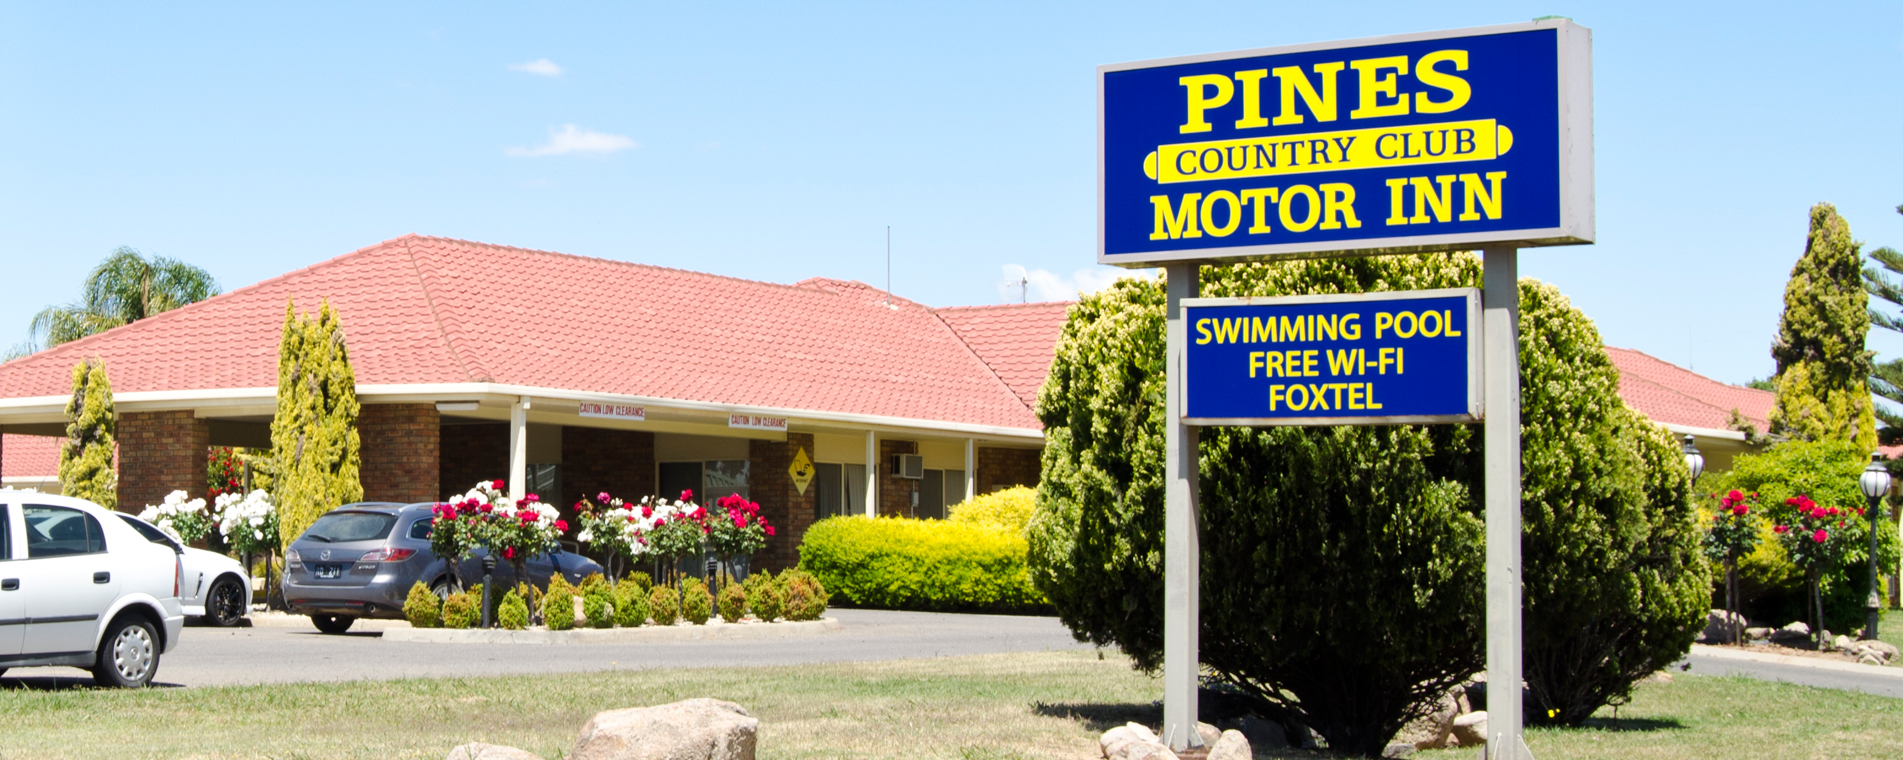 https://www.pinescountryclubmotorinn.com.au/wp-content/uploads/2016/05/Pine-country-club-banner4.jpg